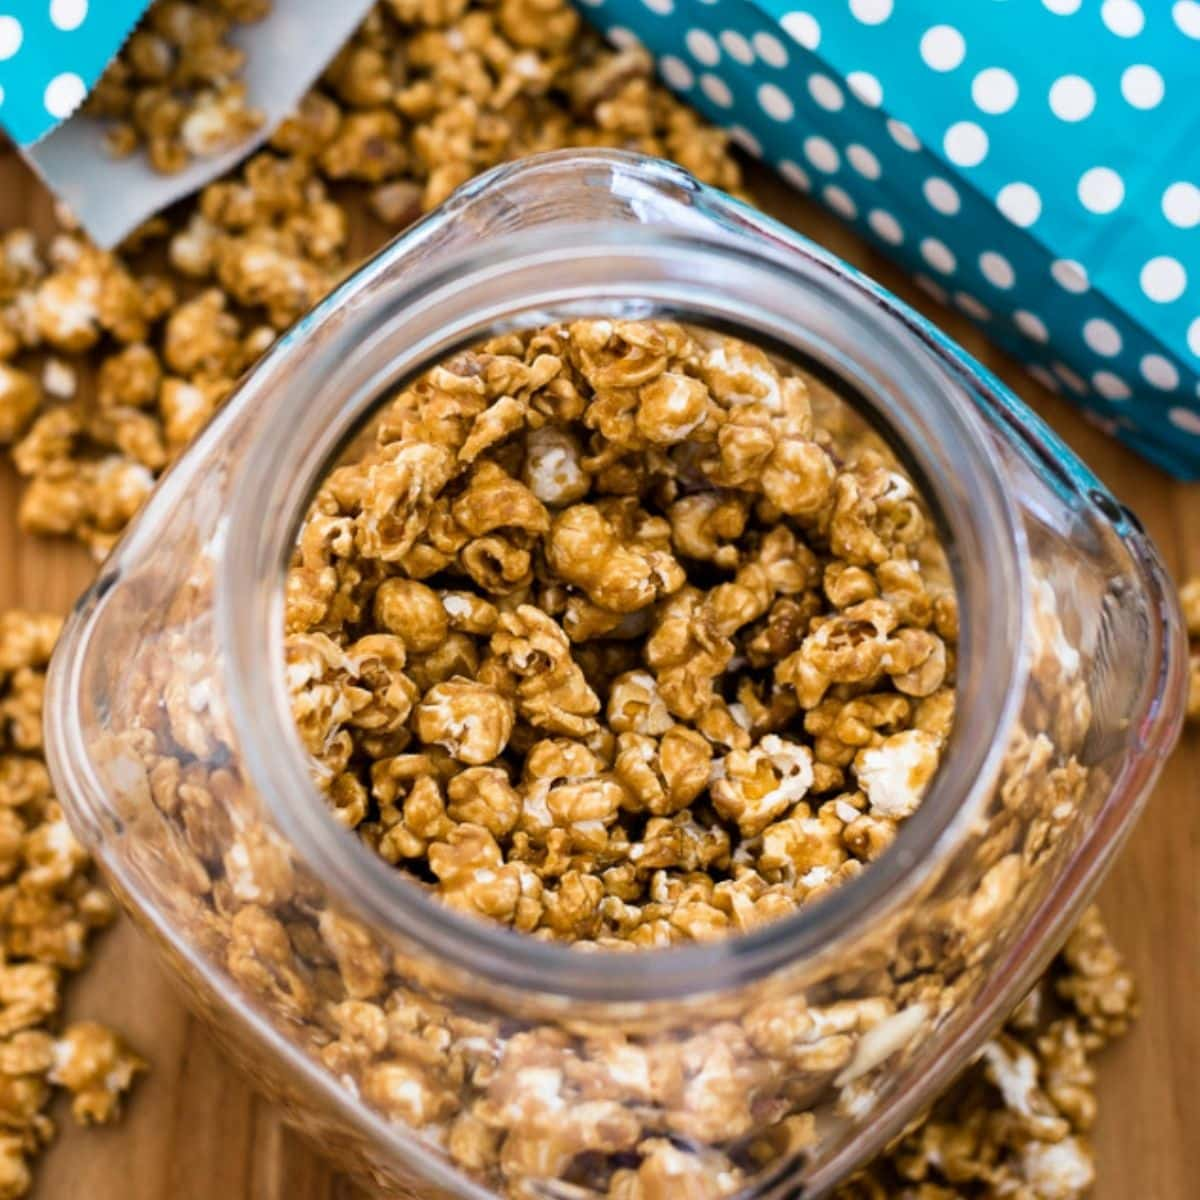 Overhead image of a glass candy jar filled with homemade caramel corn.